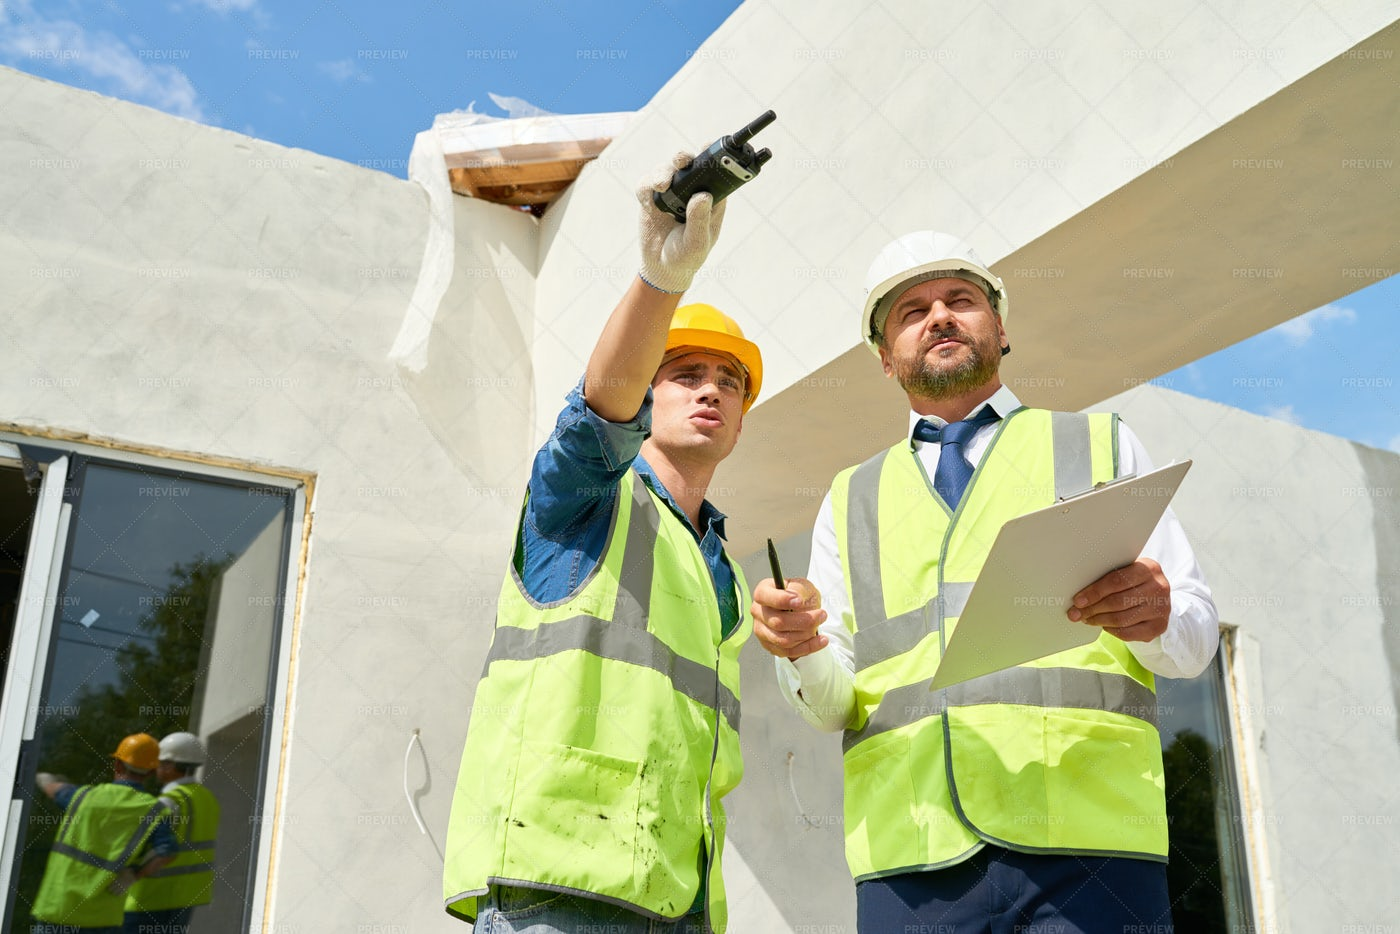 Carrying Out Inspection Of...: Stock Photos